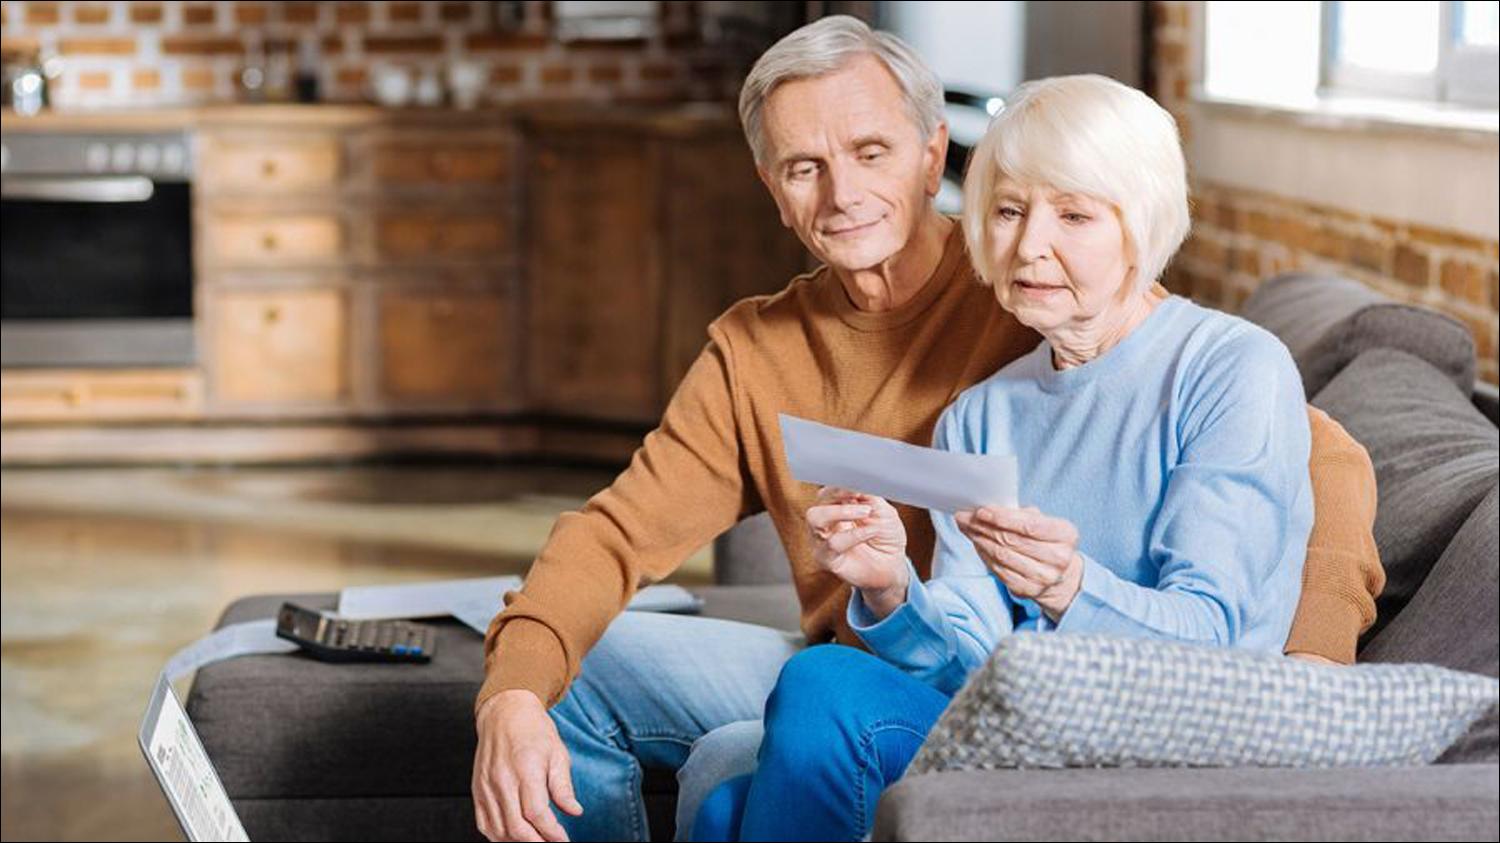 Rethinking Retirement: 3 reasons to claim Social Security benefits early